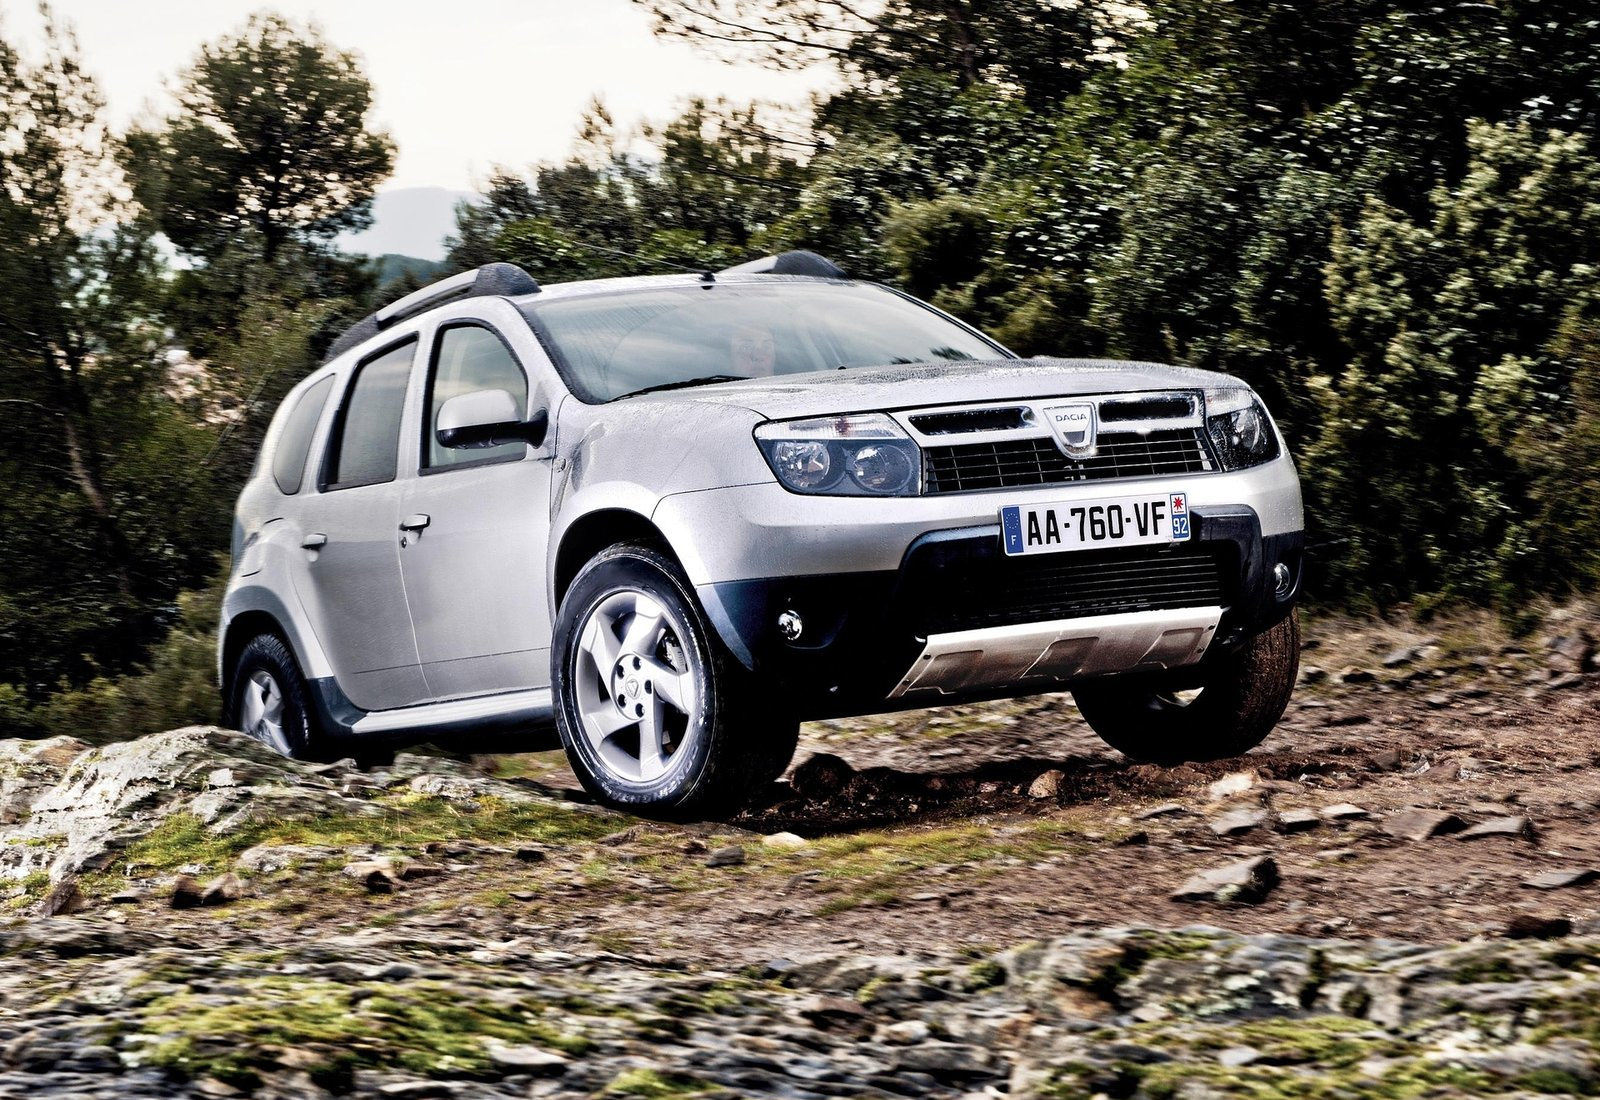 image of silver dacia duster in off road conditions